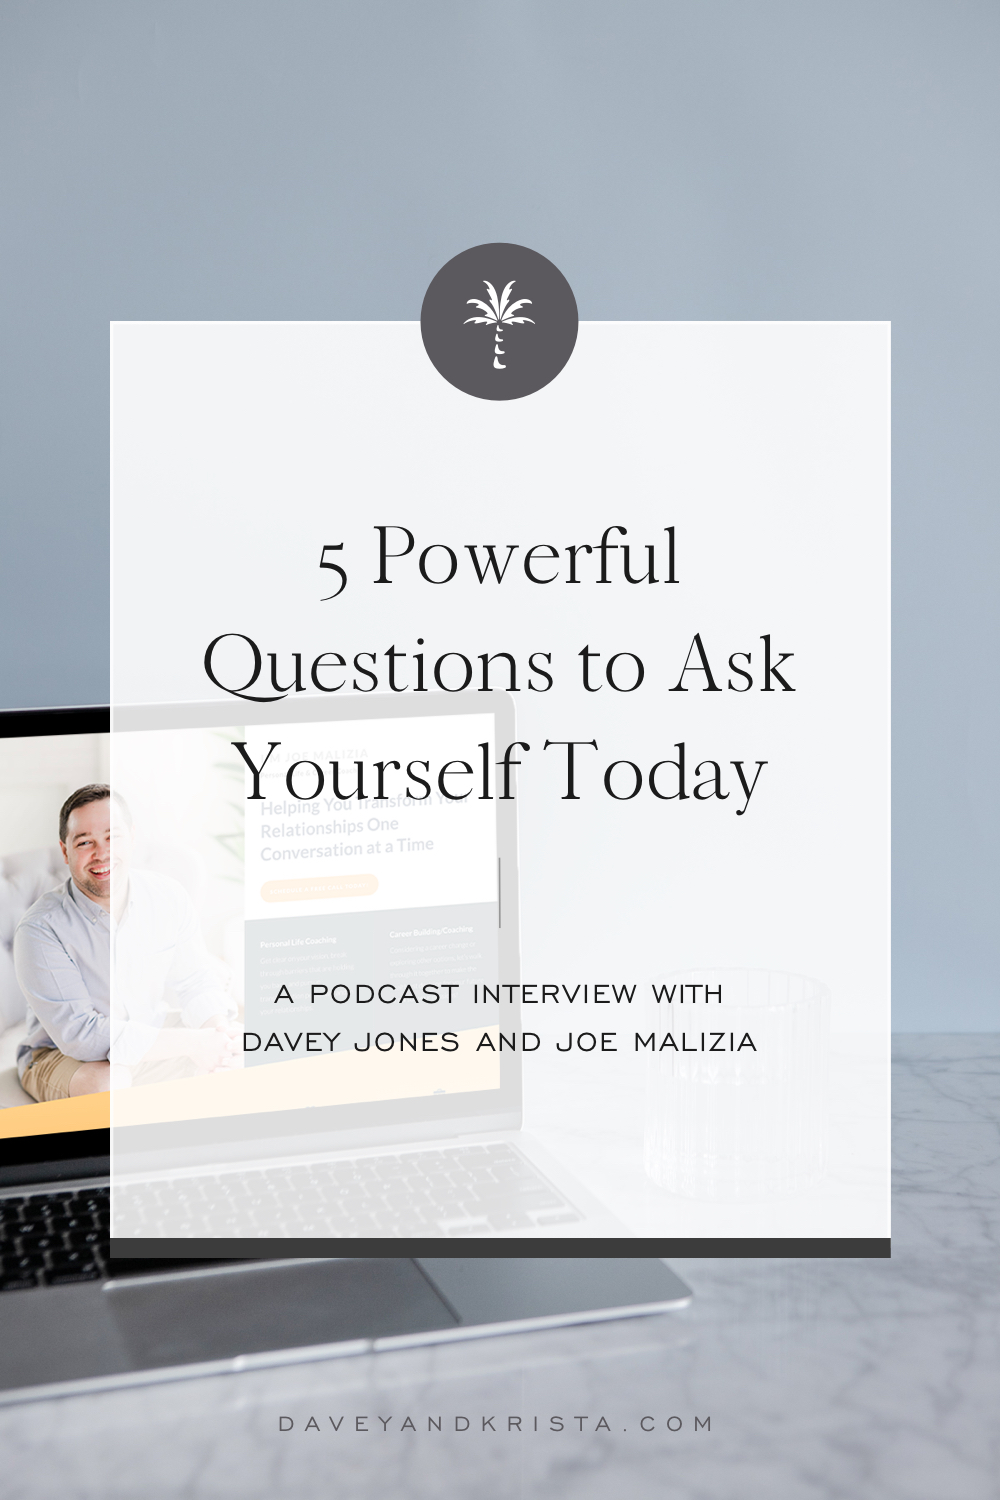 5 Powerful Questions to Ask Yourself Today   Davey & Krista